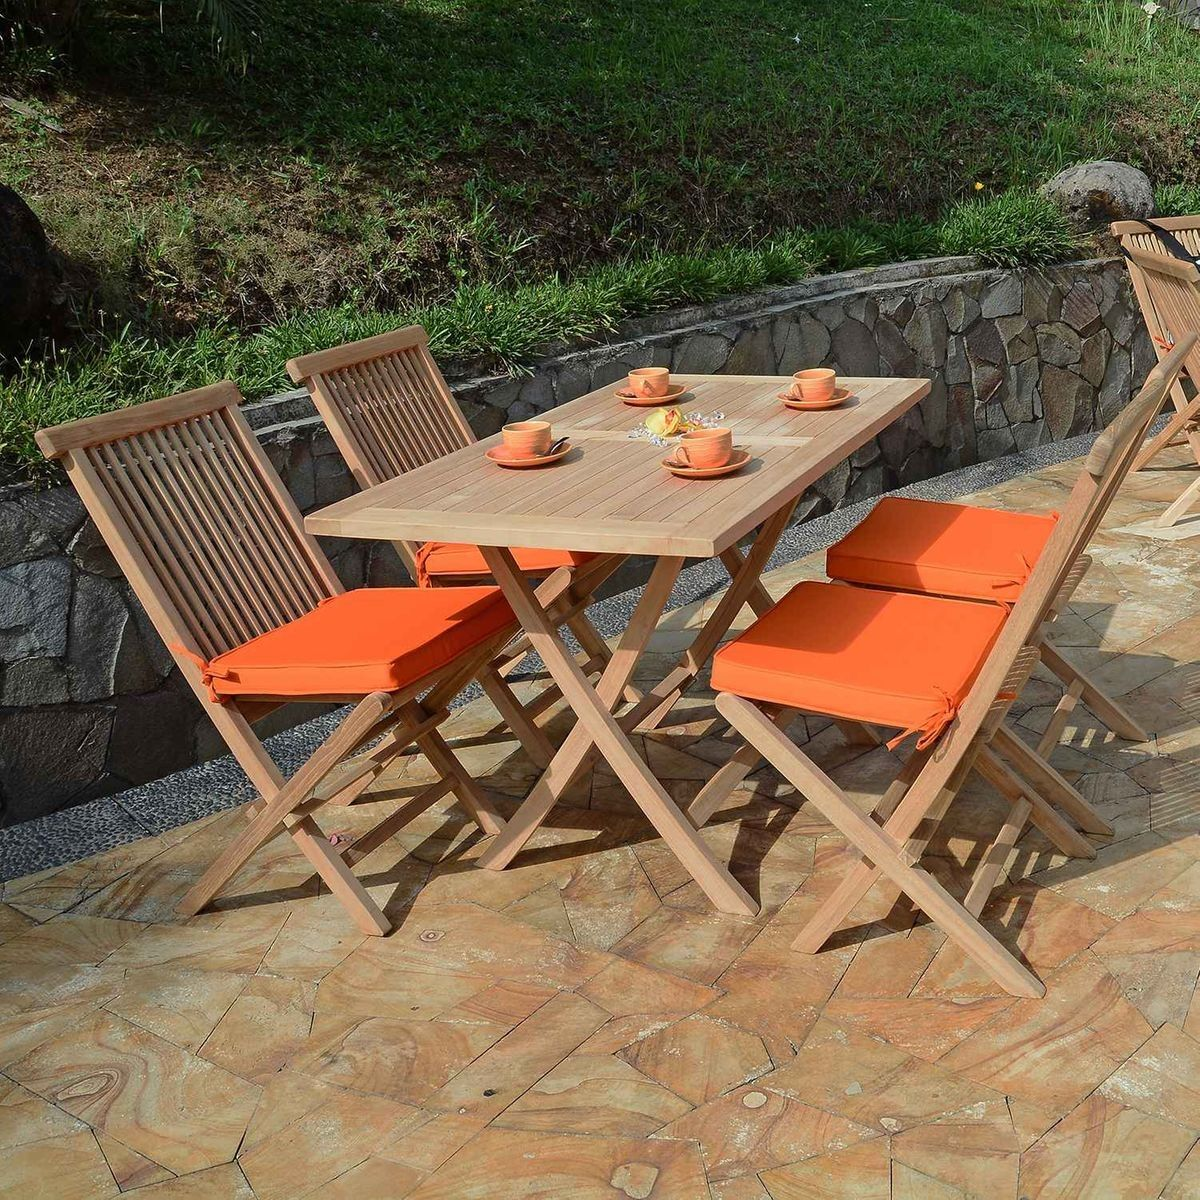 Salon de jardin en teck Ecograde Makassar, table pliante ...